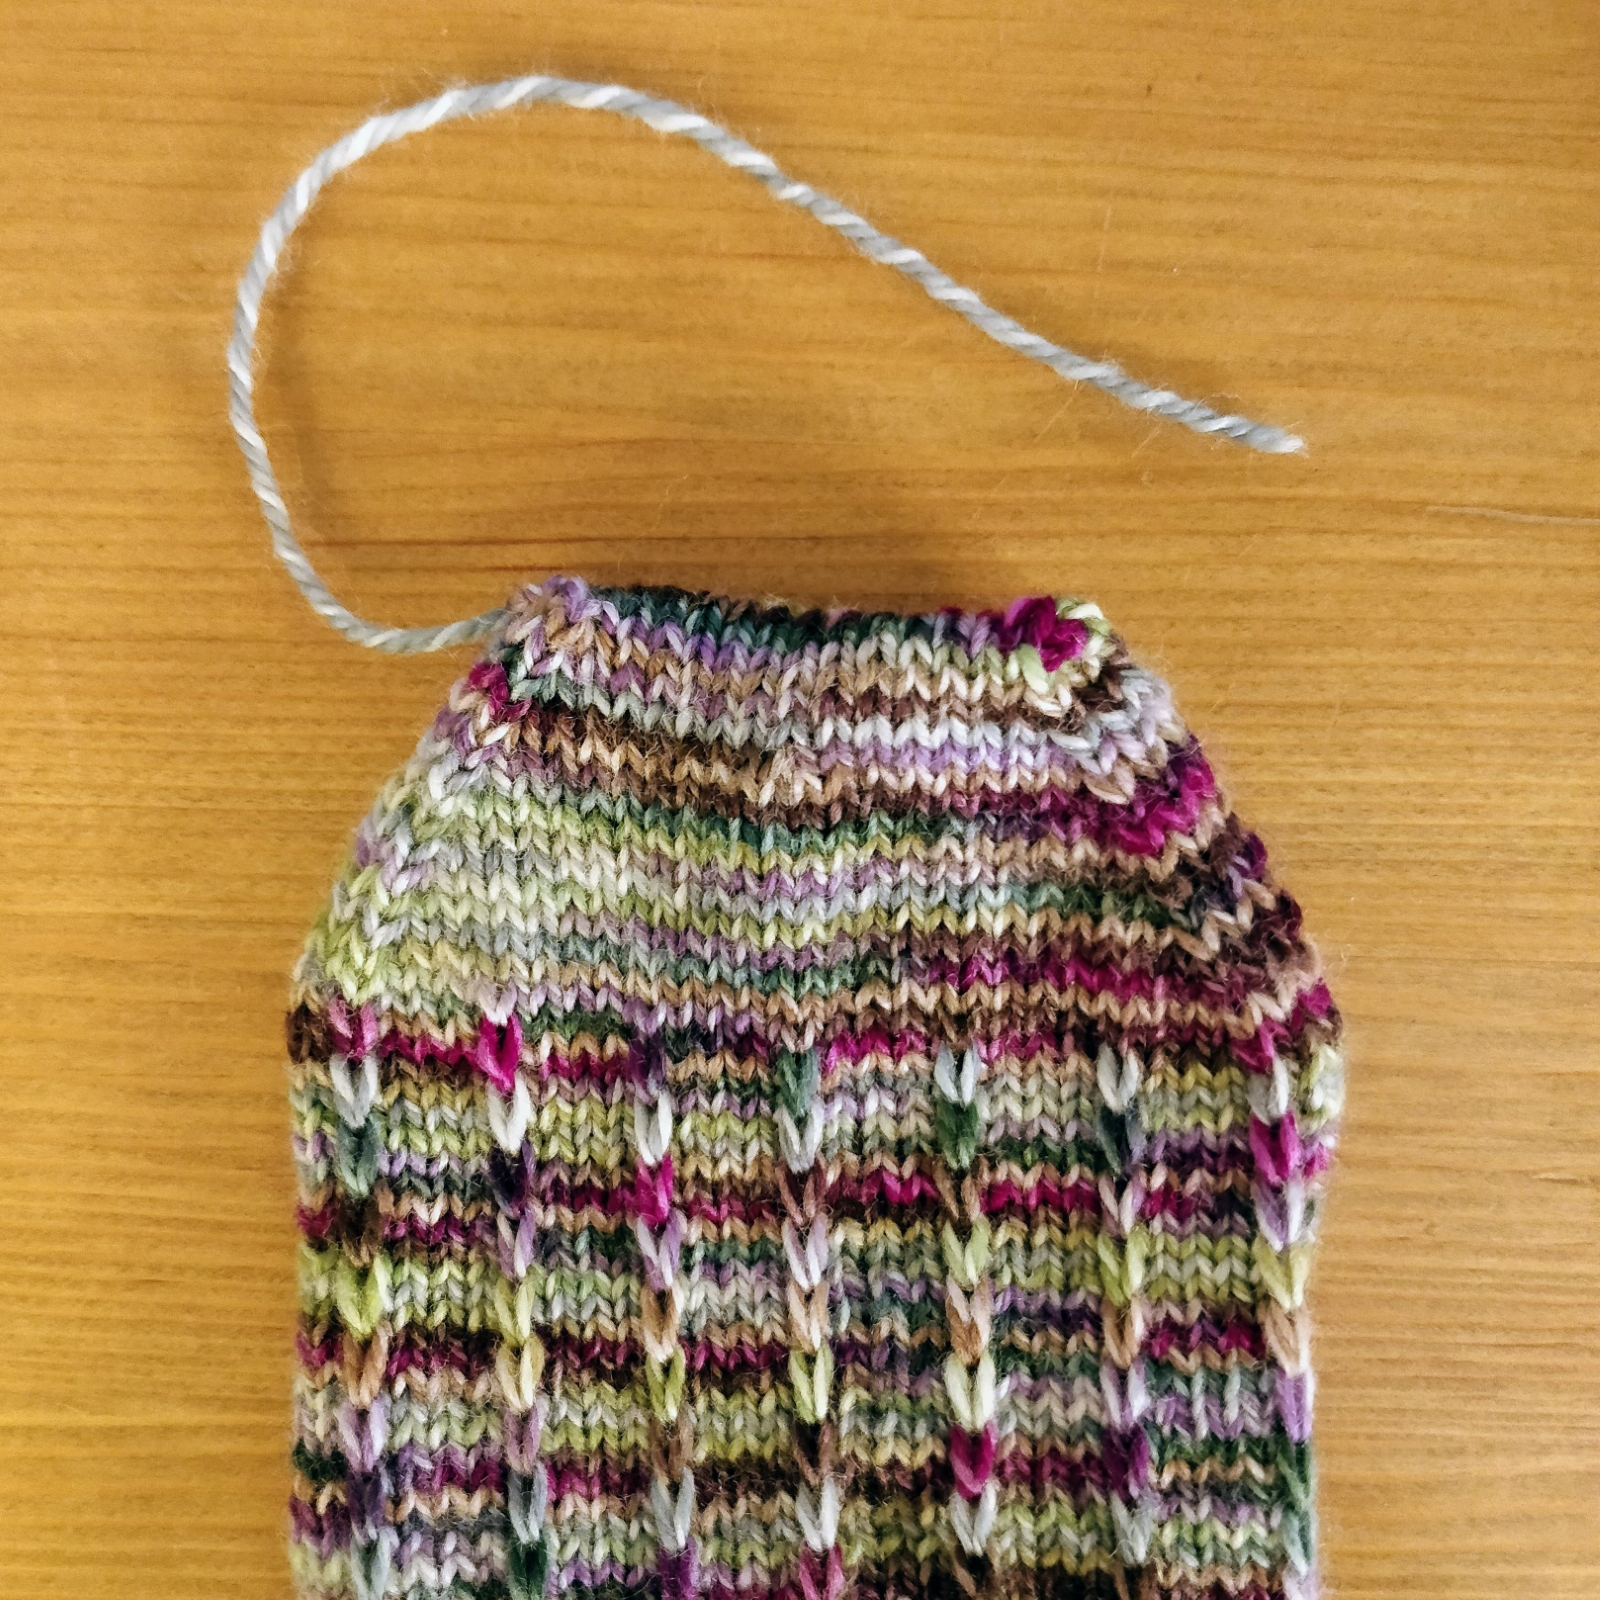 The finished toe of a new sock, with only a few inches of yarn dangling from one corner.